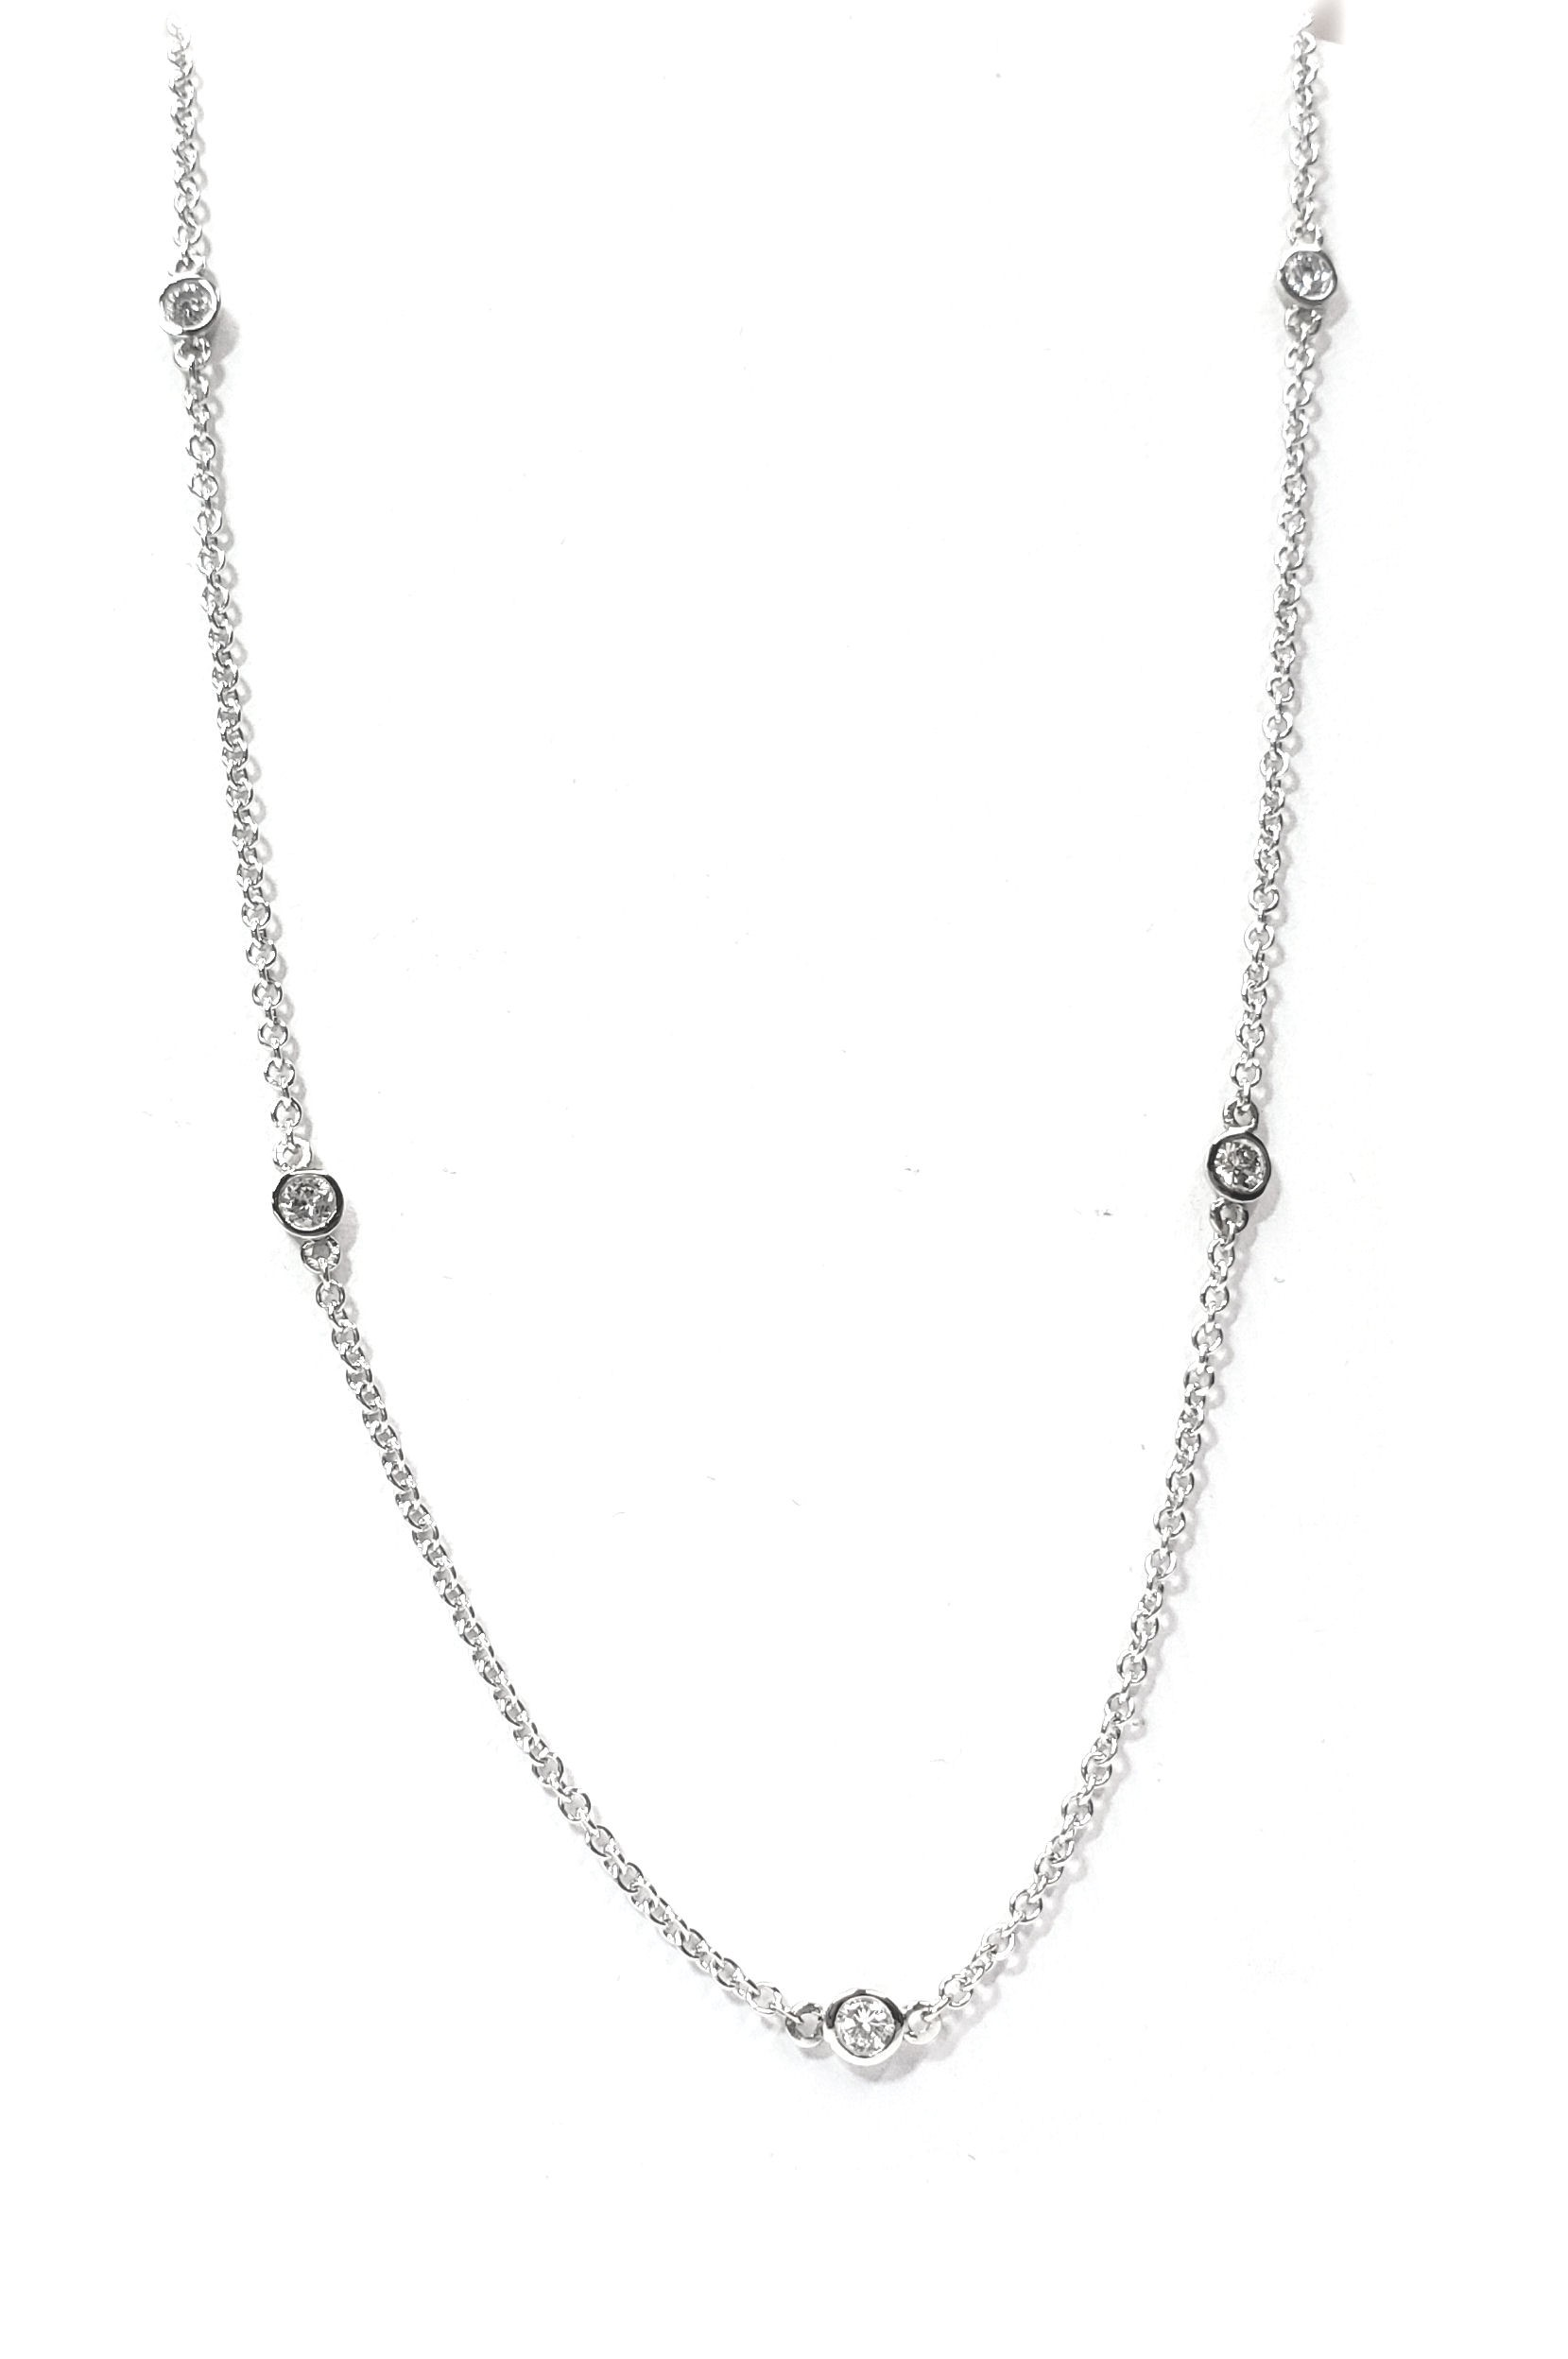 Diamond By The Yard Necklace, 38pts. in 18kt White Gold